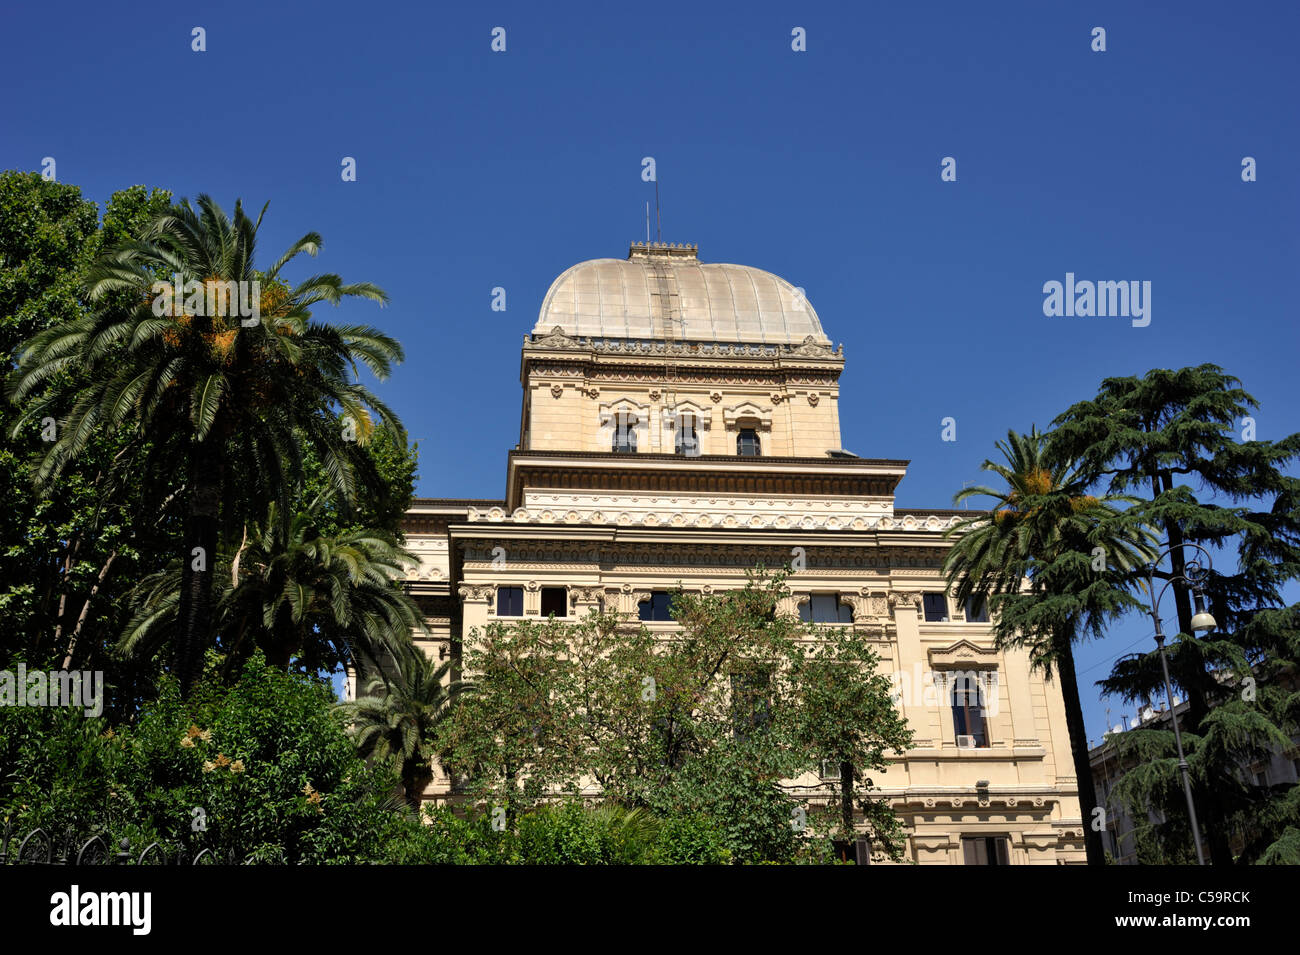 italy, rome, jewish ghetto, synagogue - Stock Image